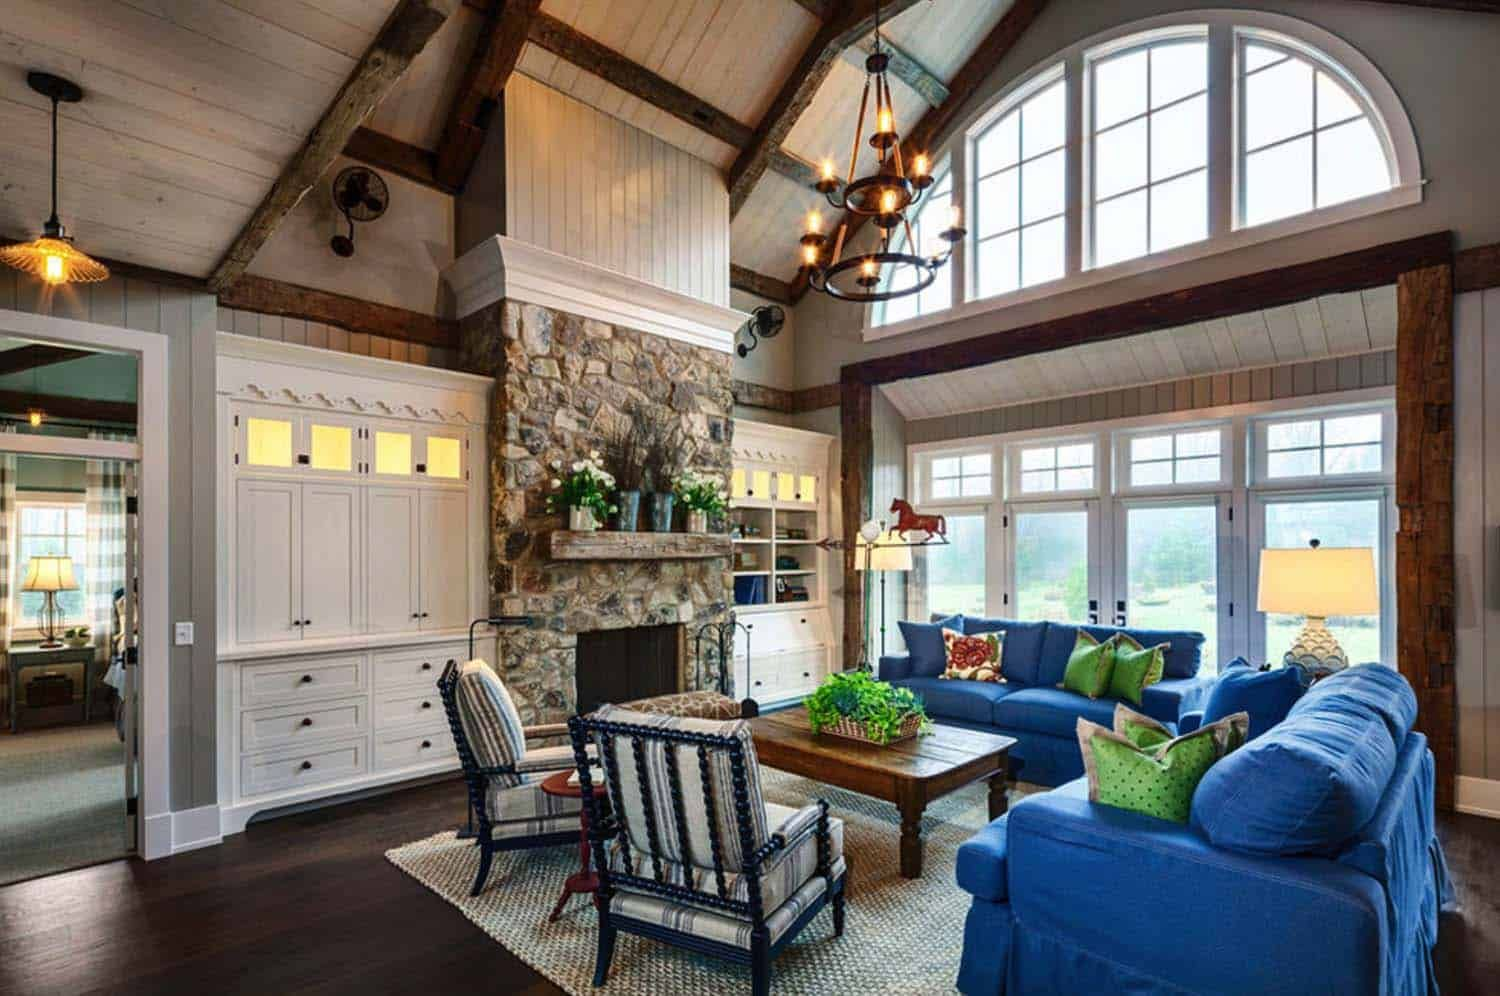 Inviting farmhouse style home surrounded by forest in